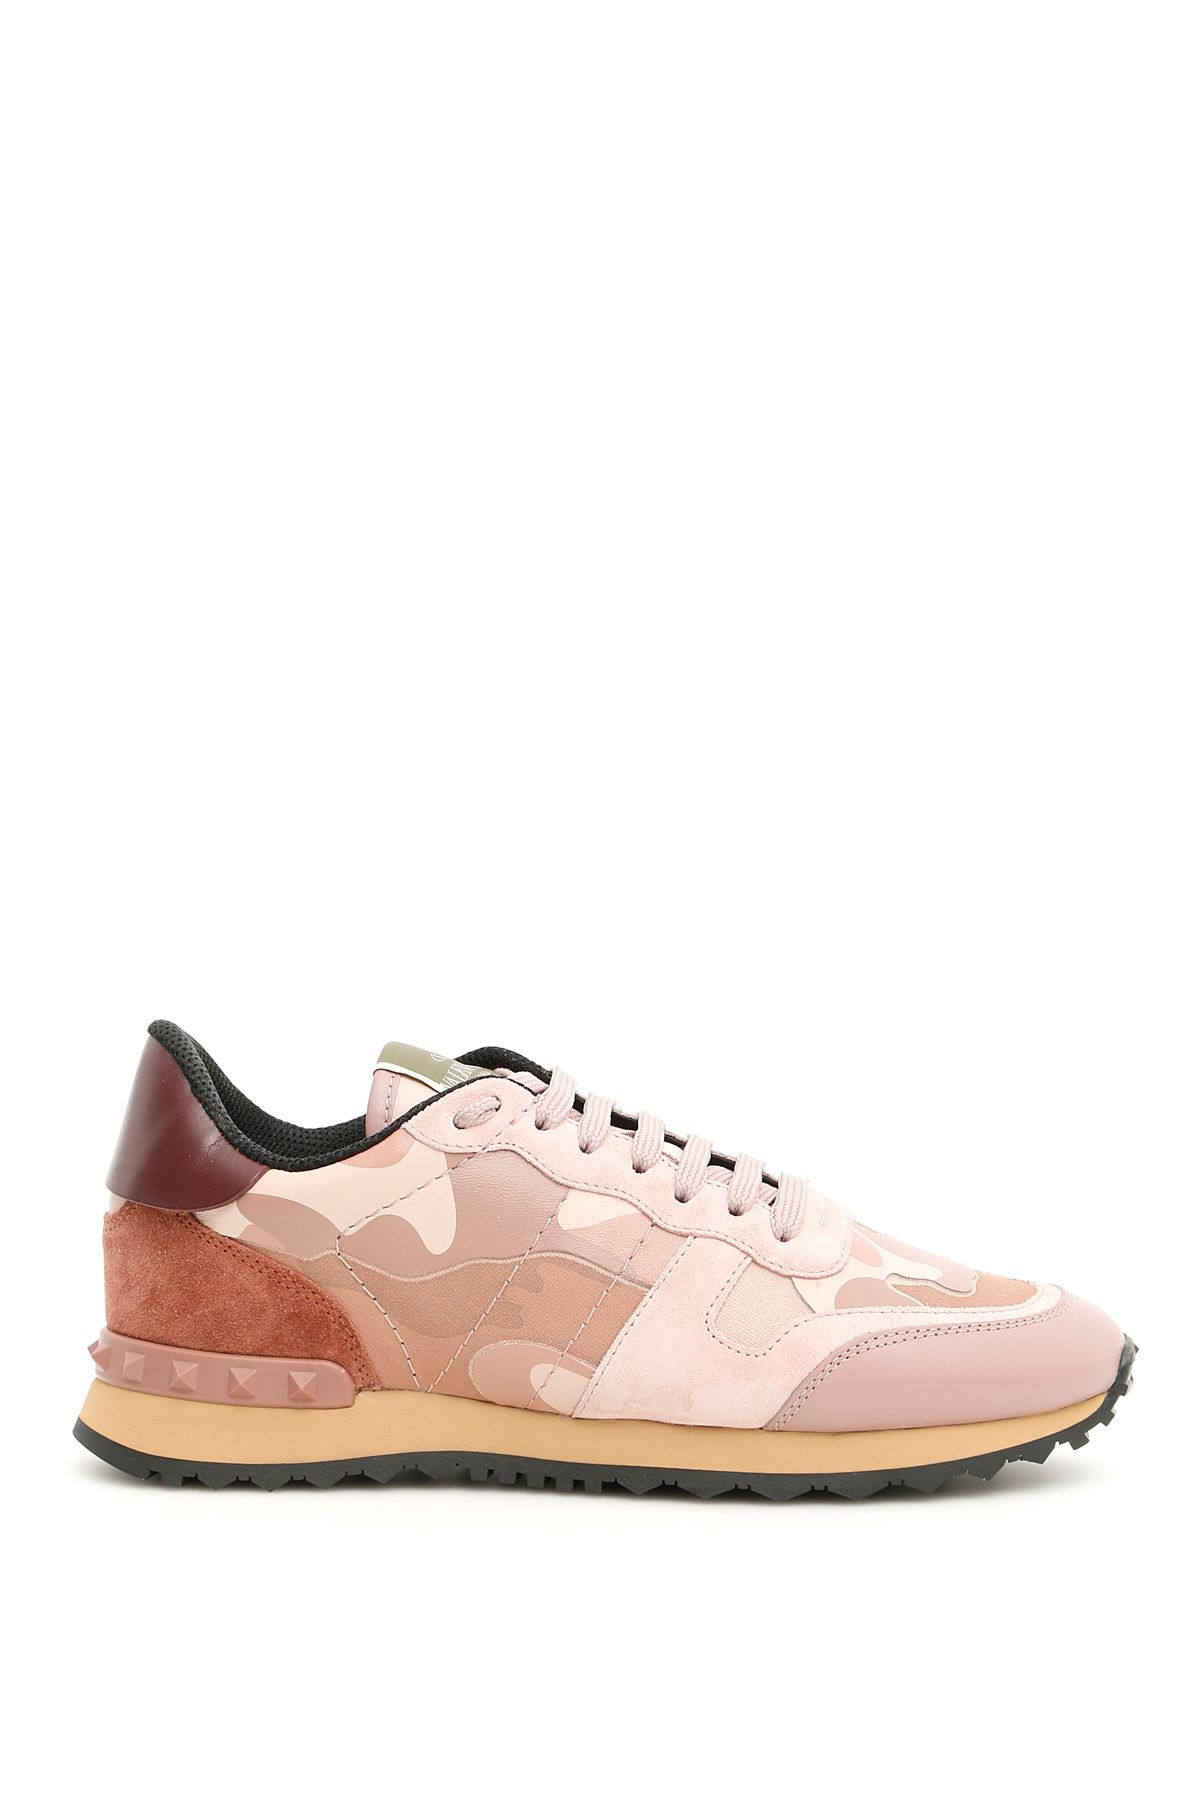 Camouflage Sneakers in Poudre Multi